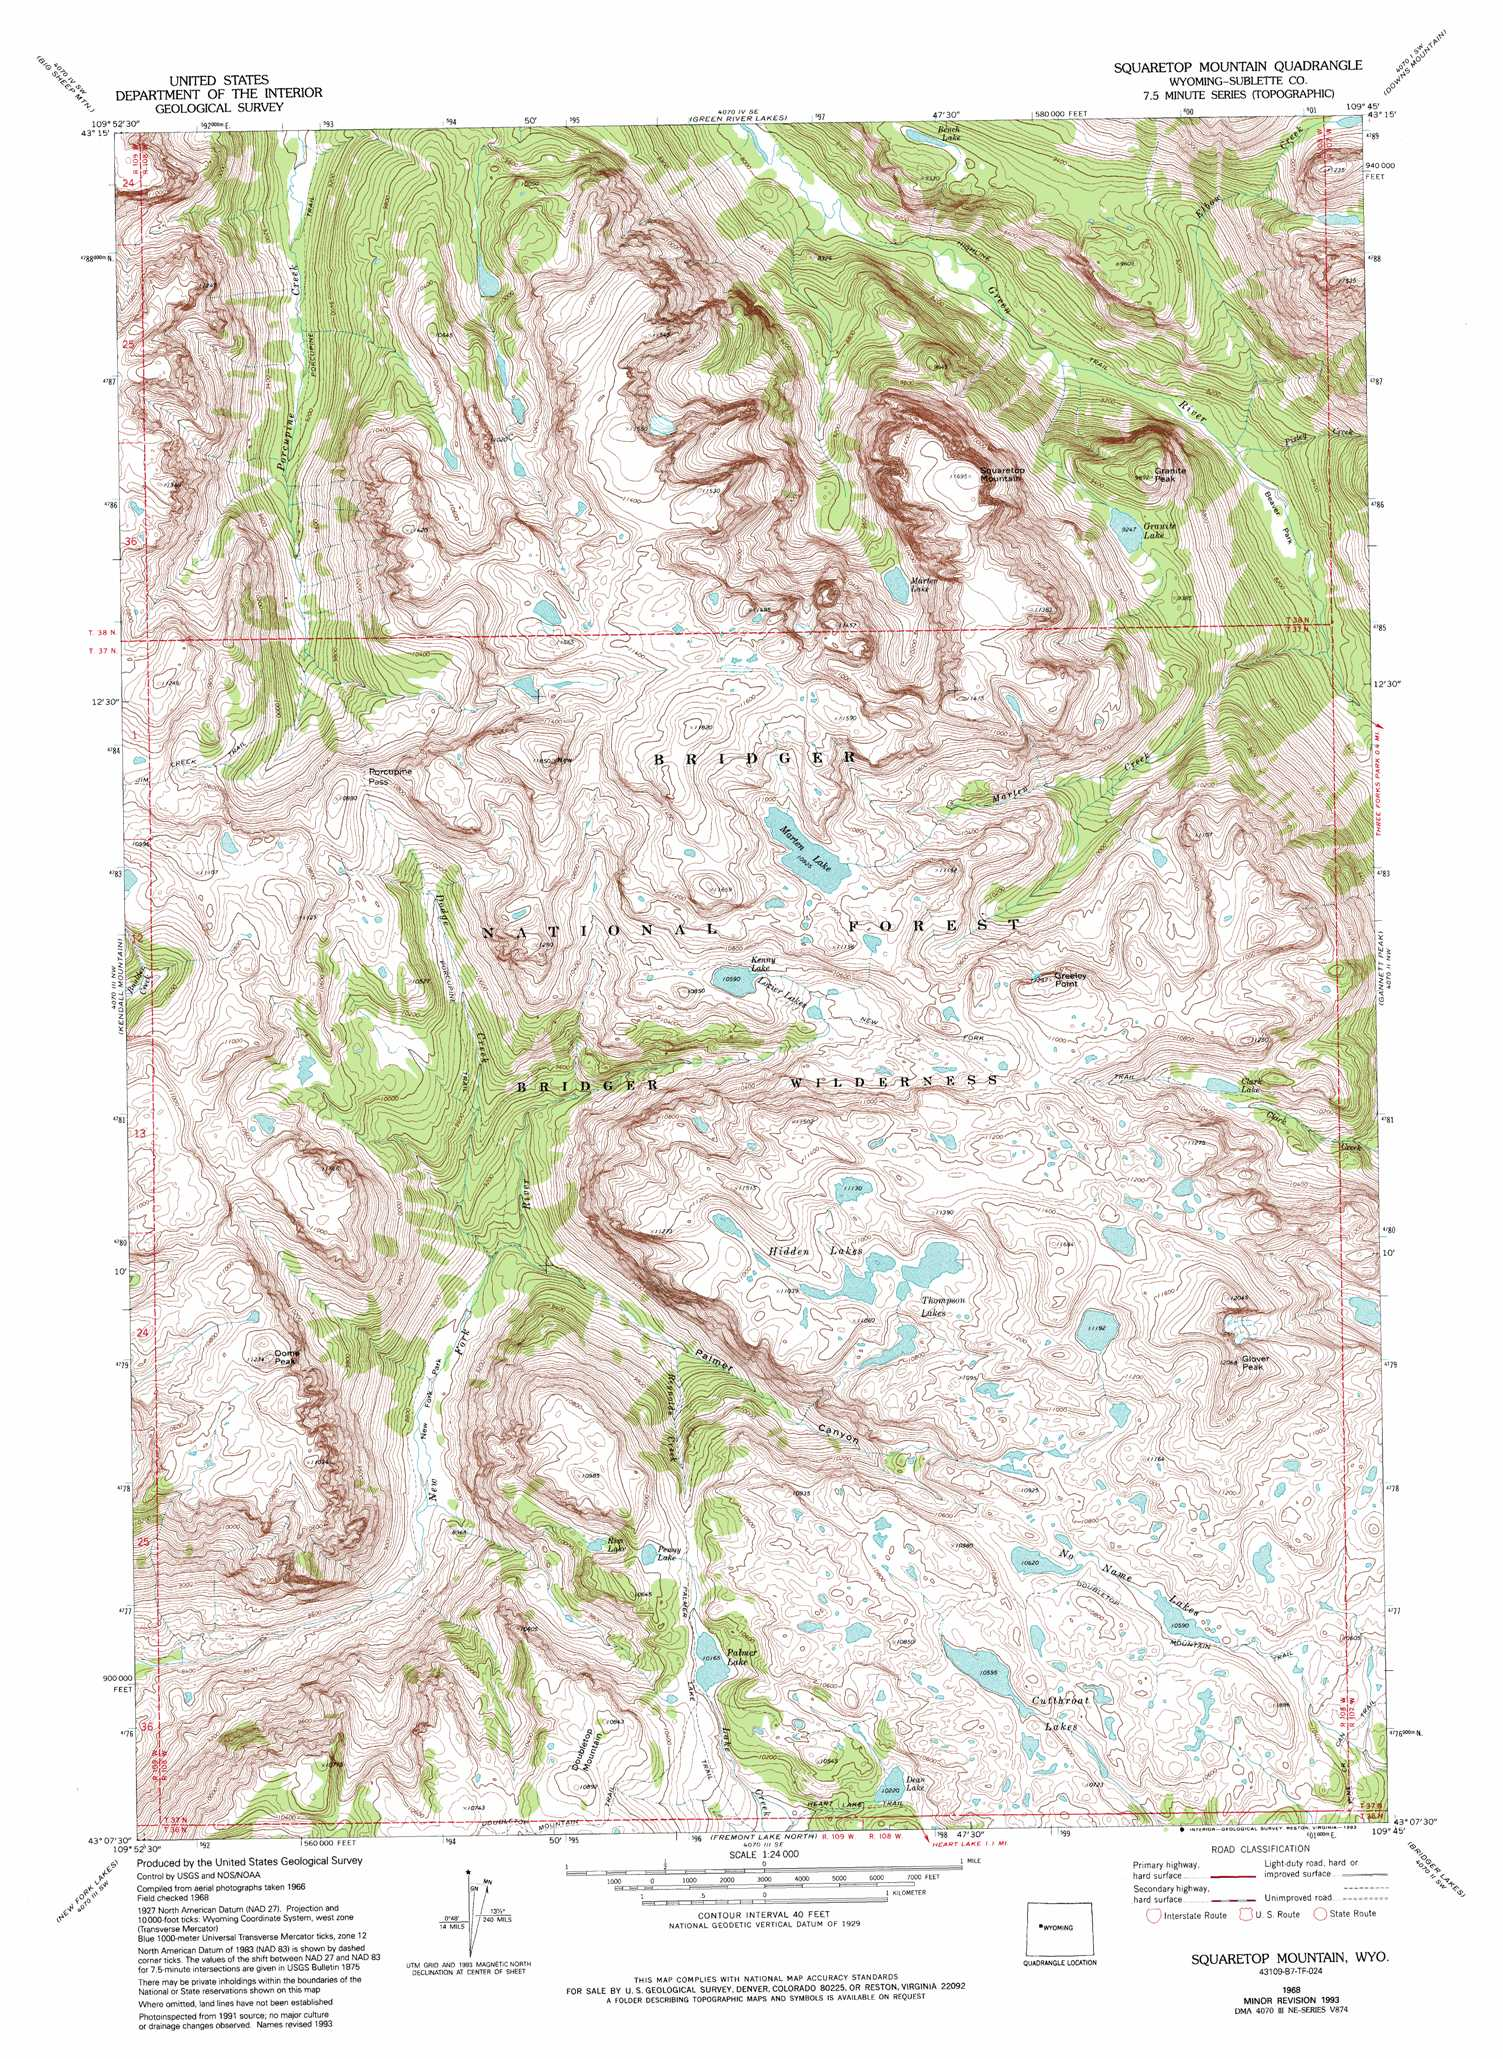 Squaretop Mountain Topographic Map WY  USGS Topo Quad